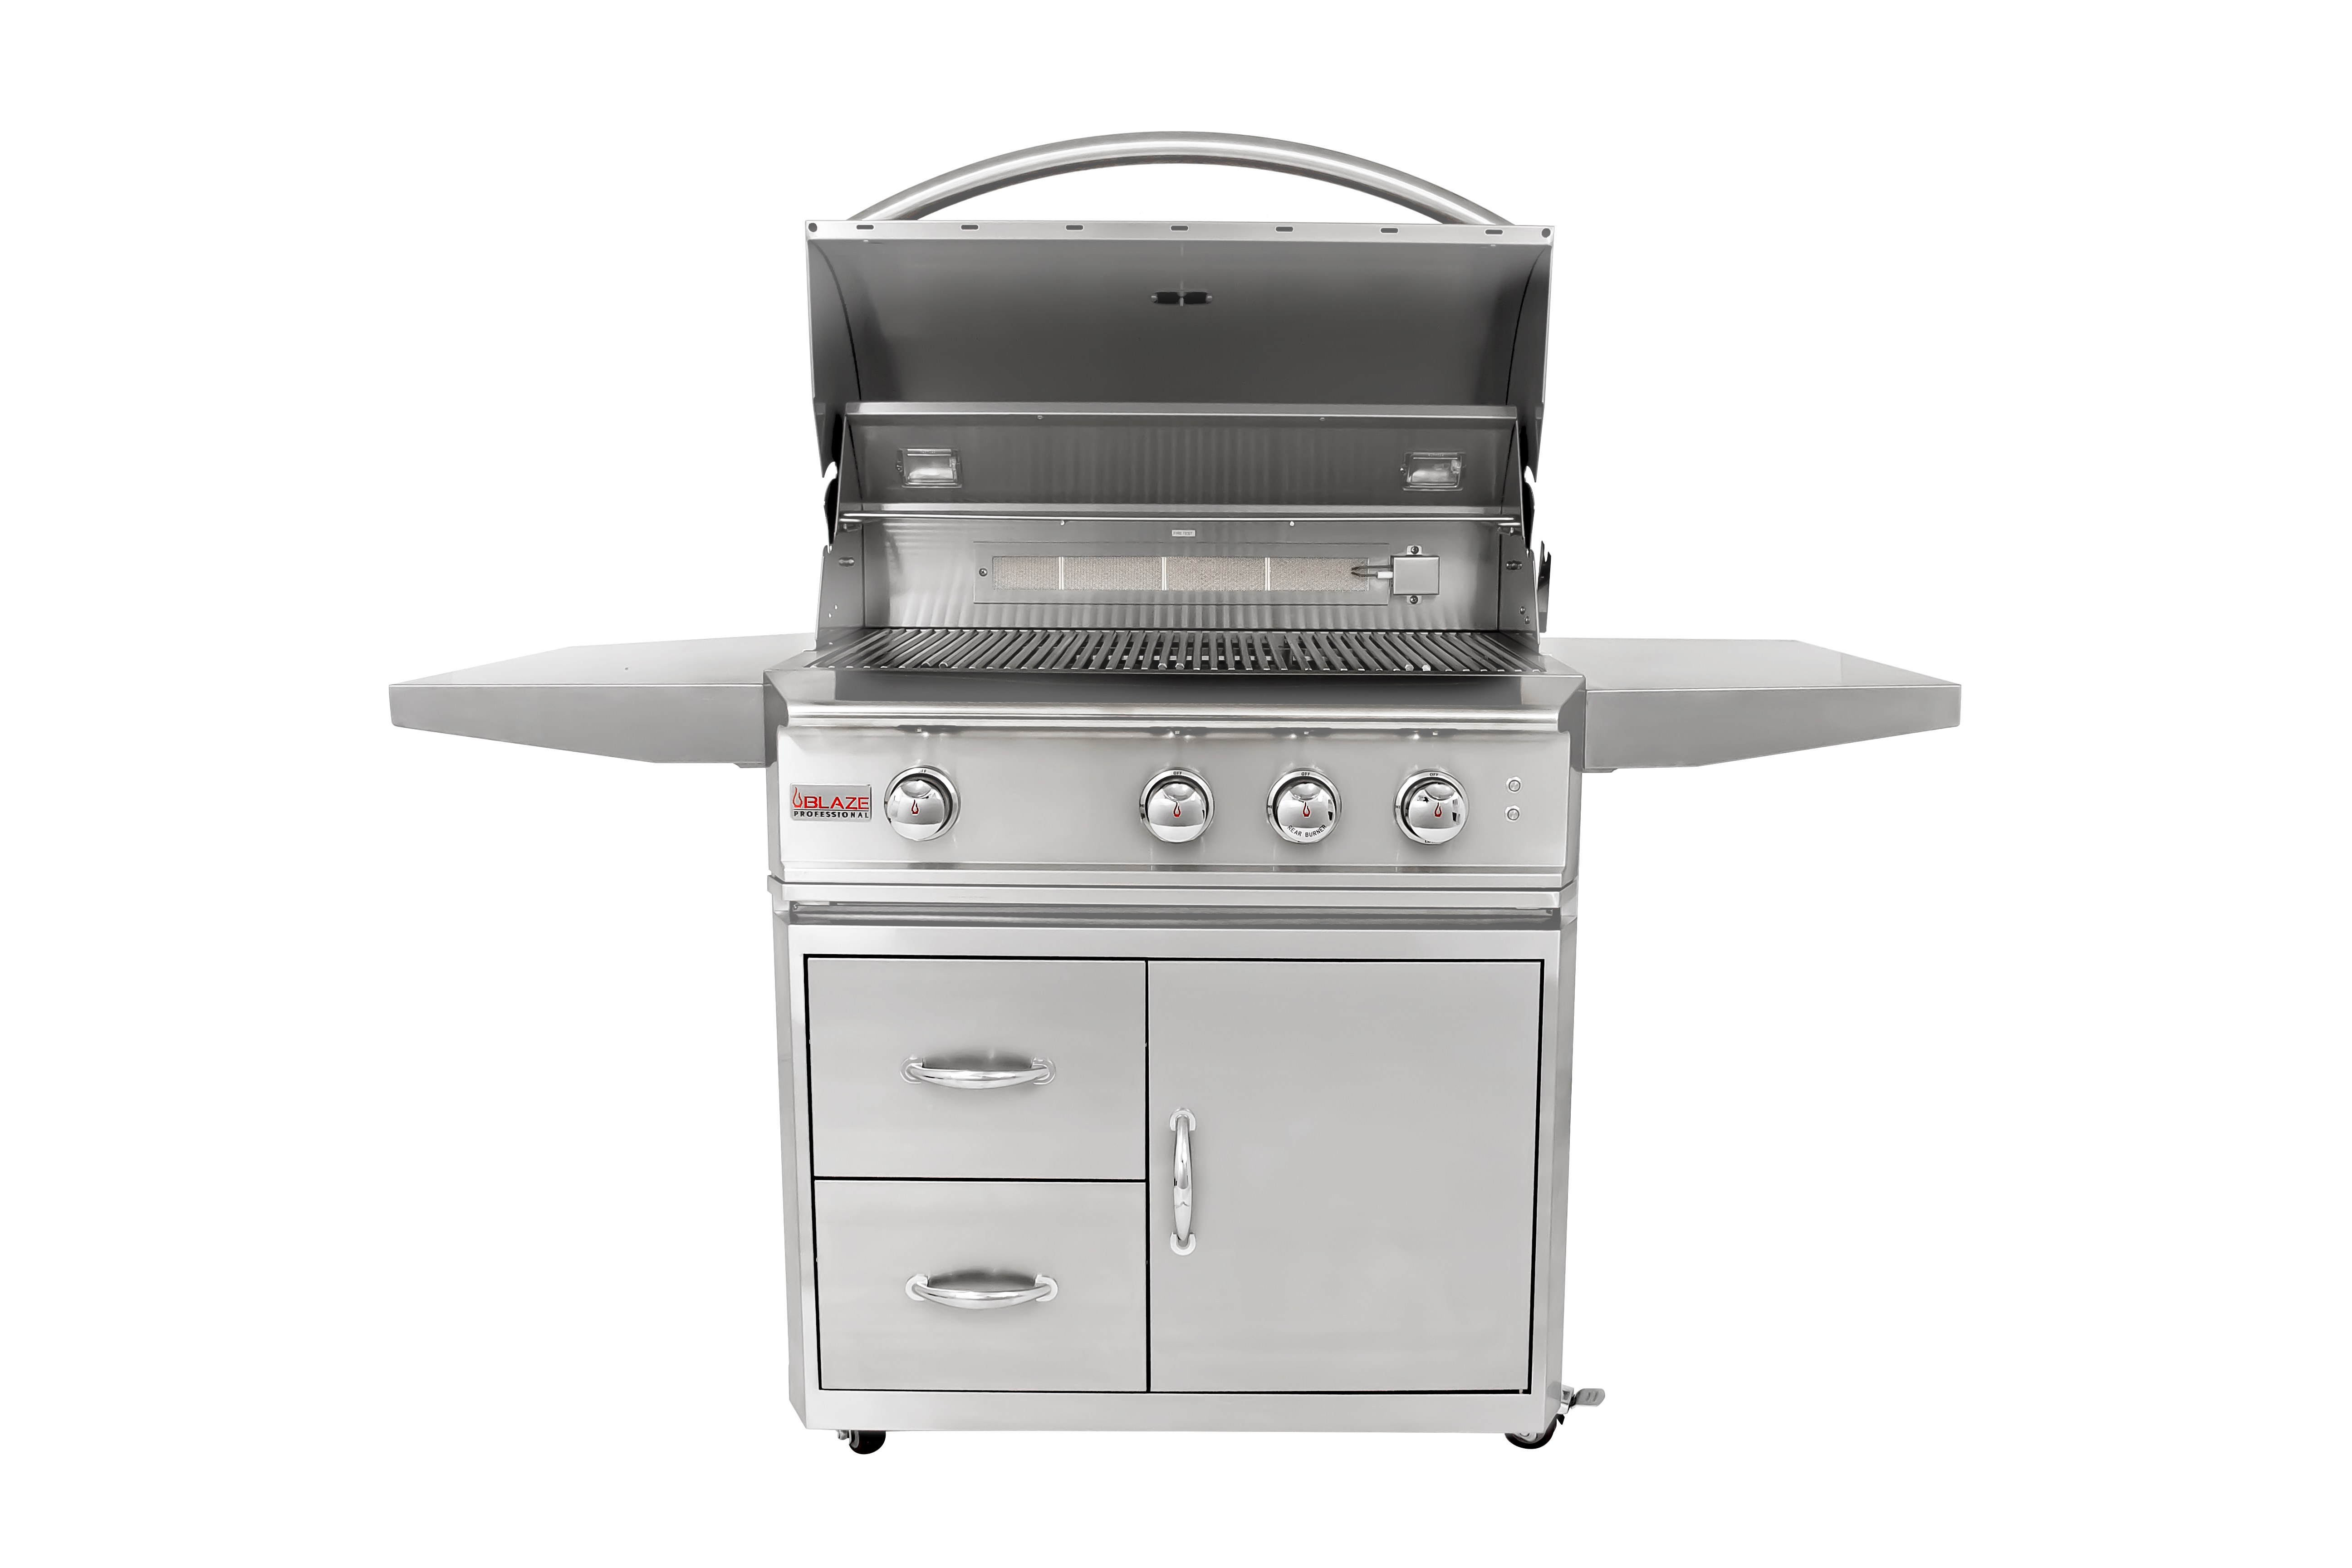 best of backyard archives for blaze bbq grills